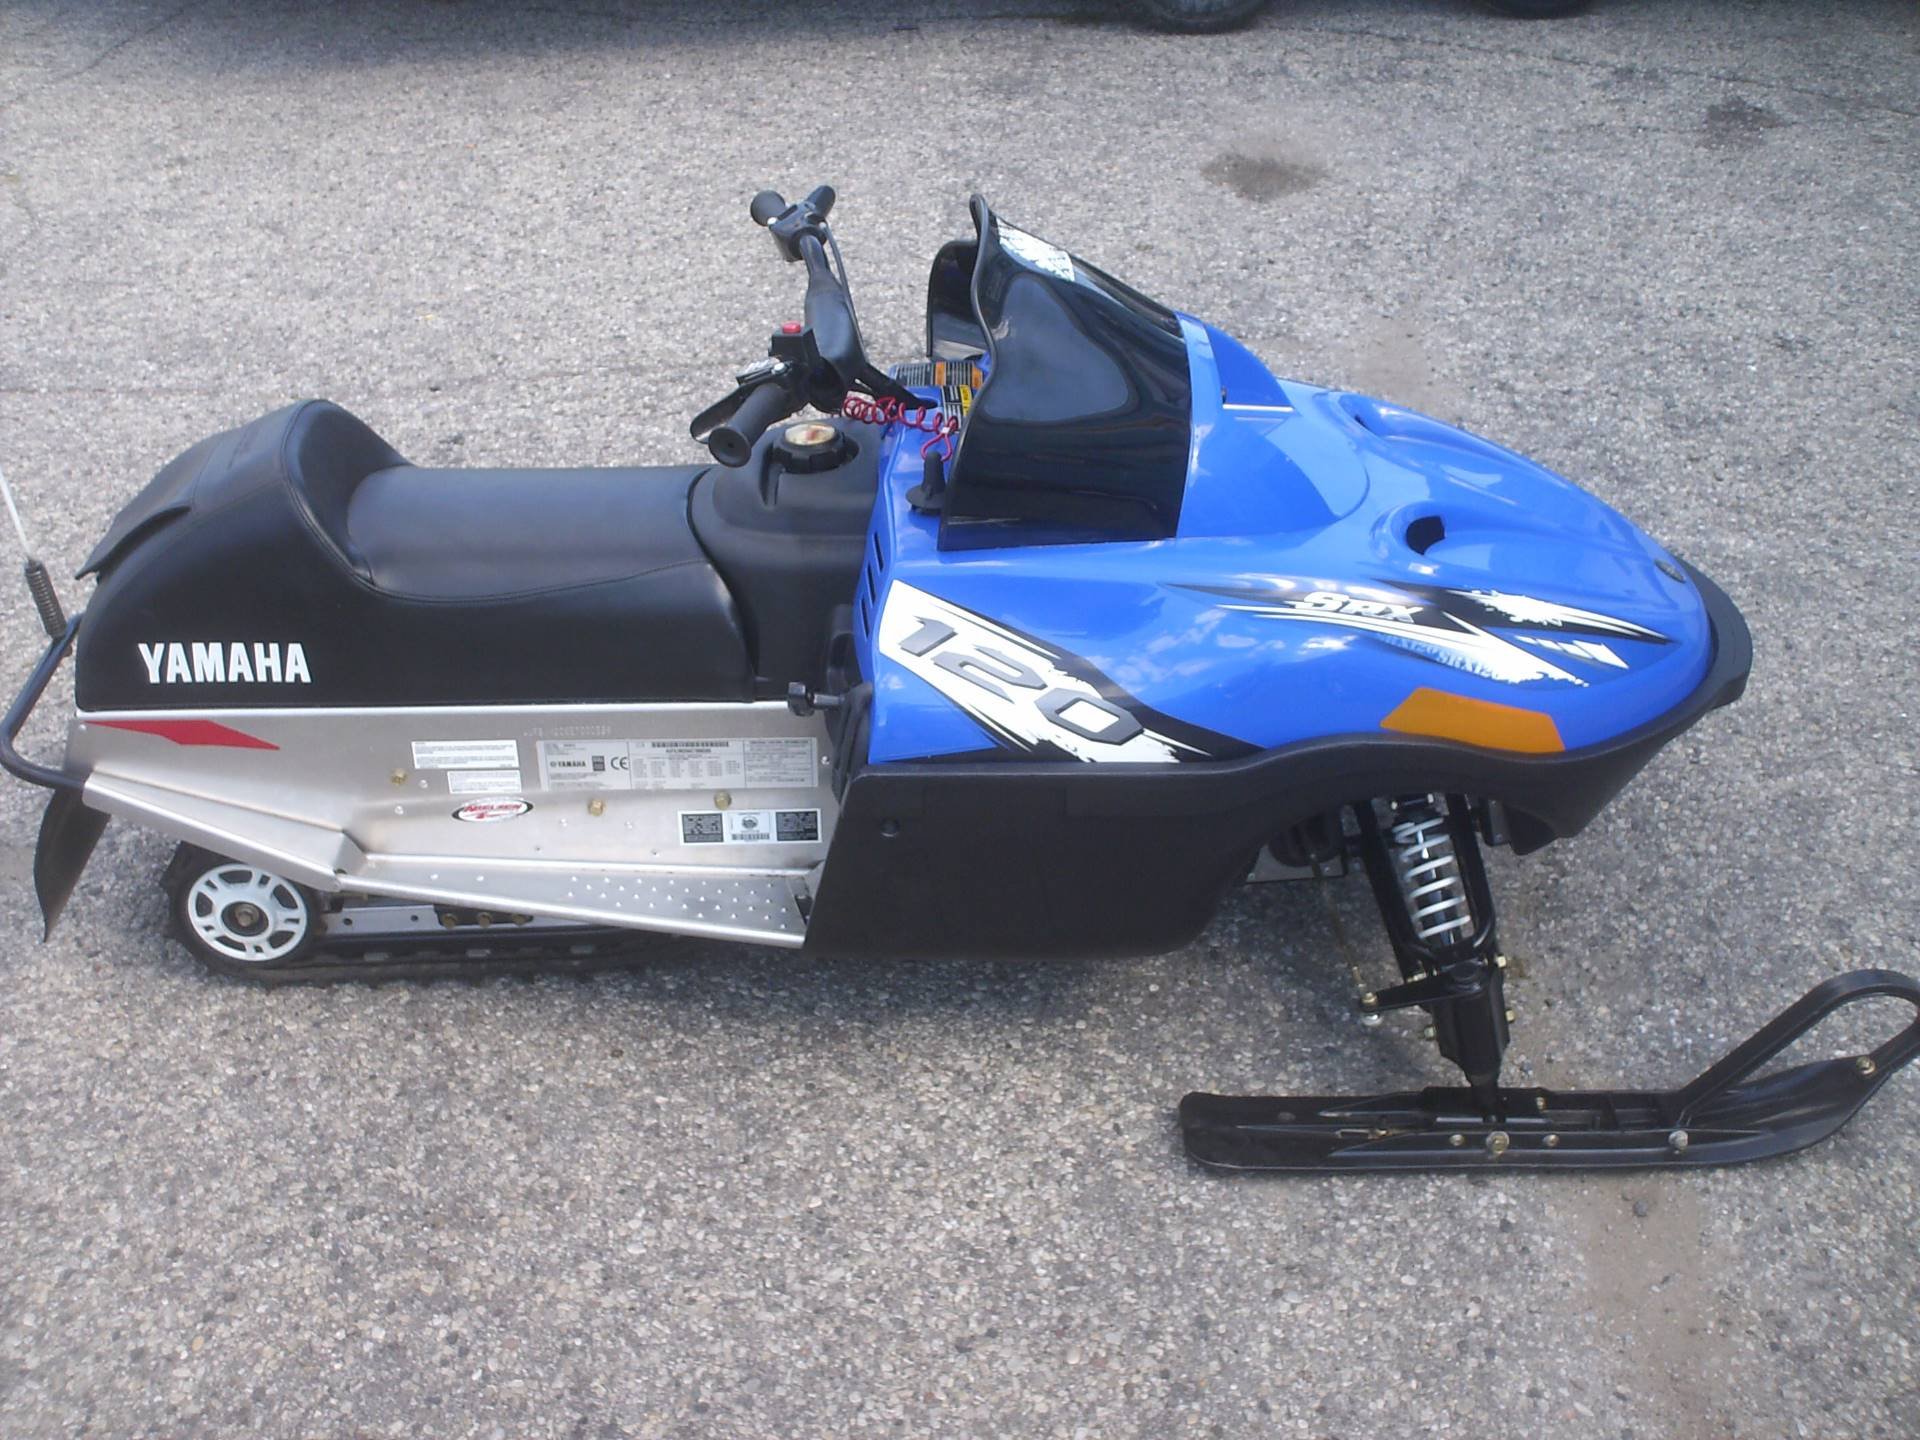 2014 Yamaha SRX® 120 in Mukwonago, Wisconsin - Photo 2